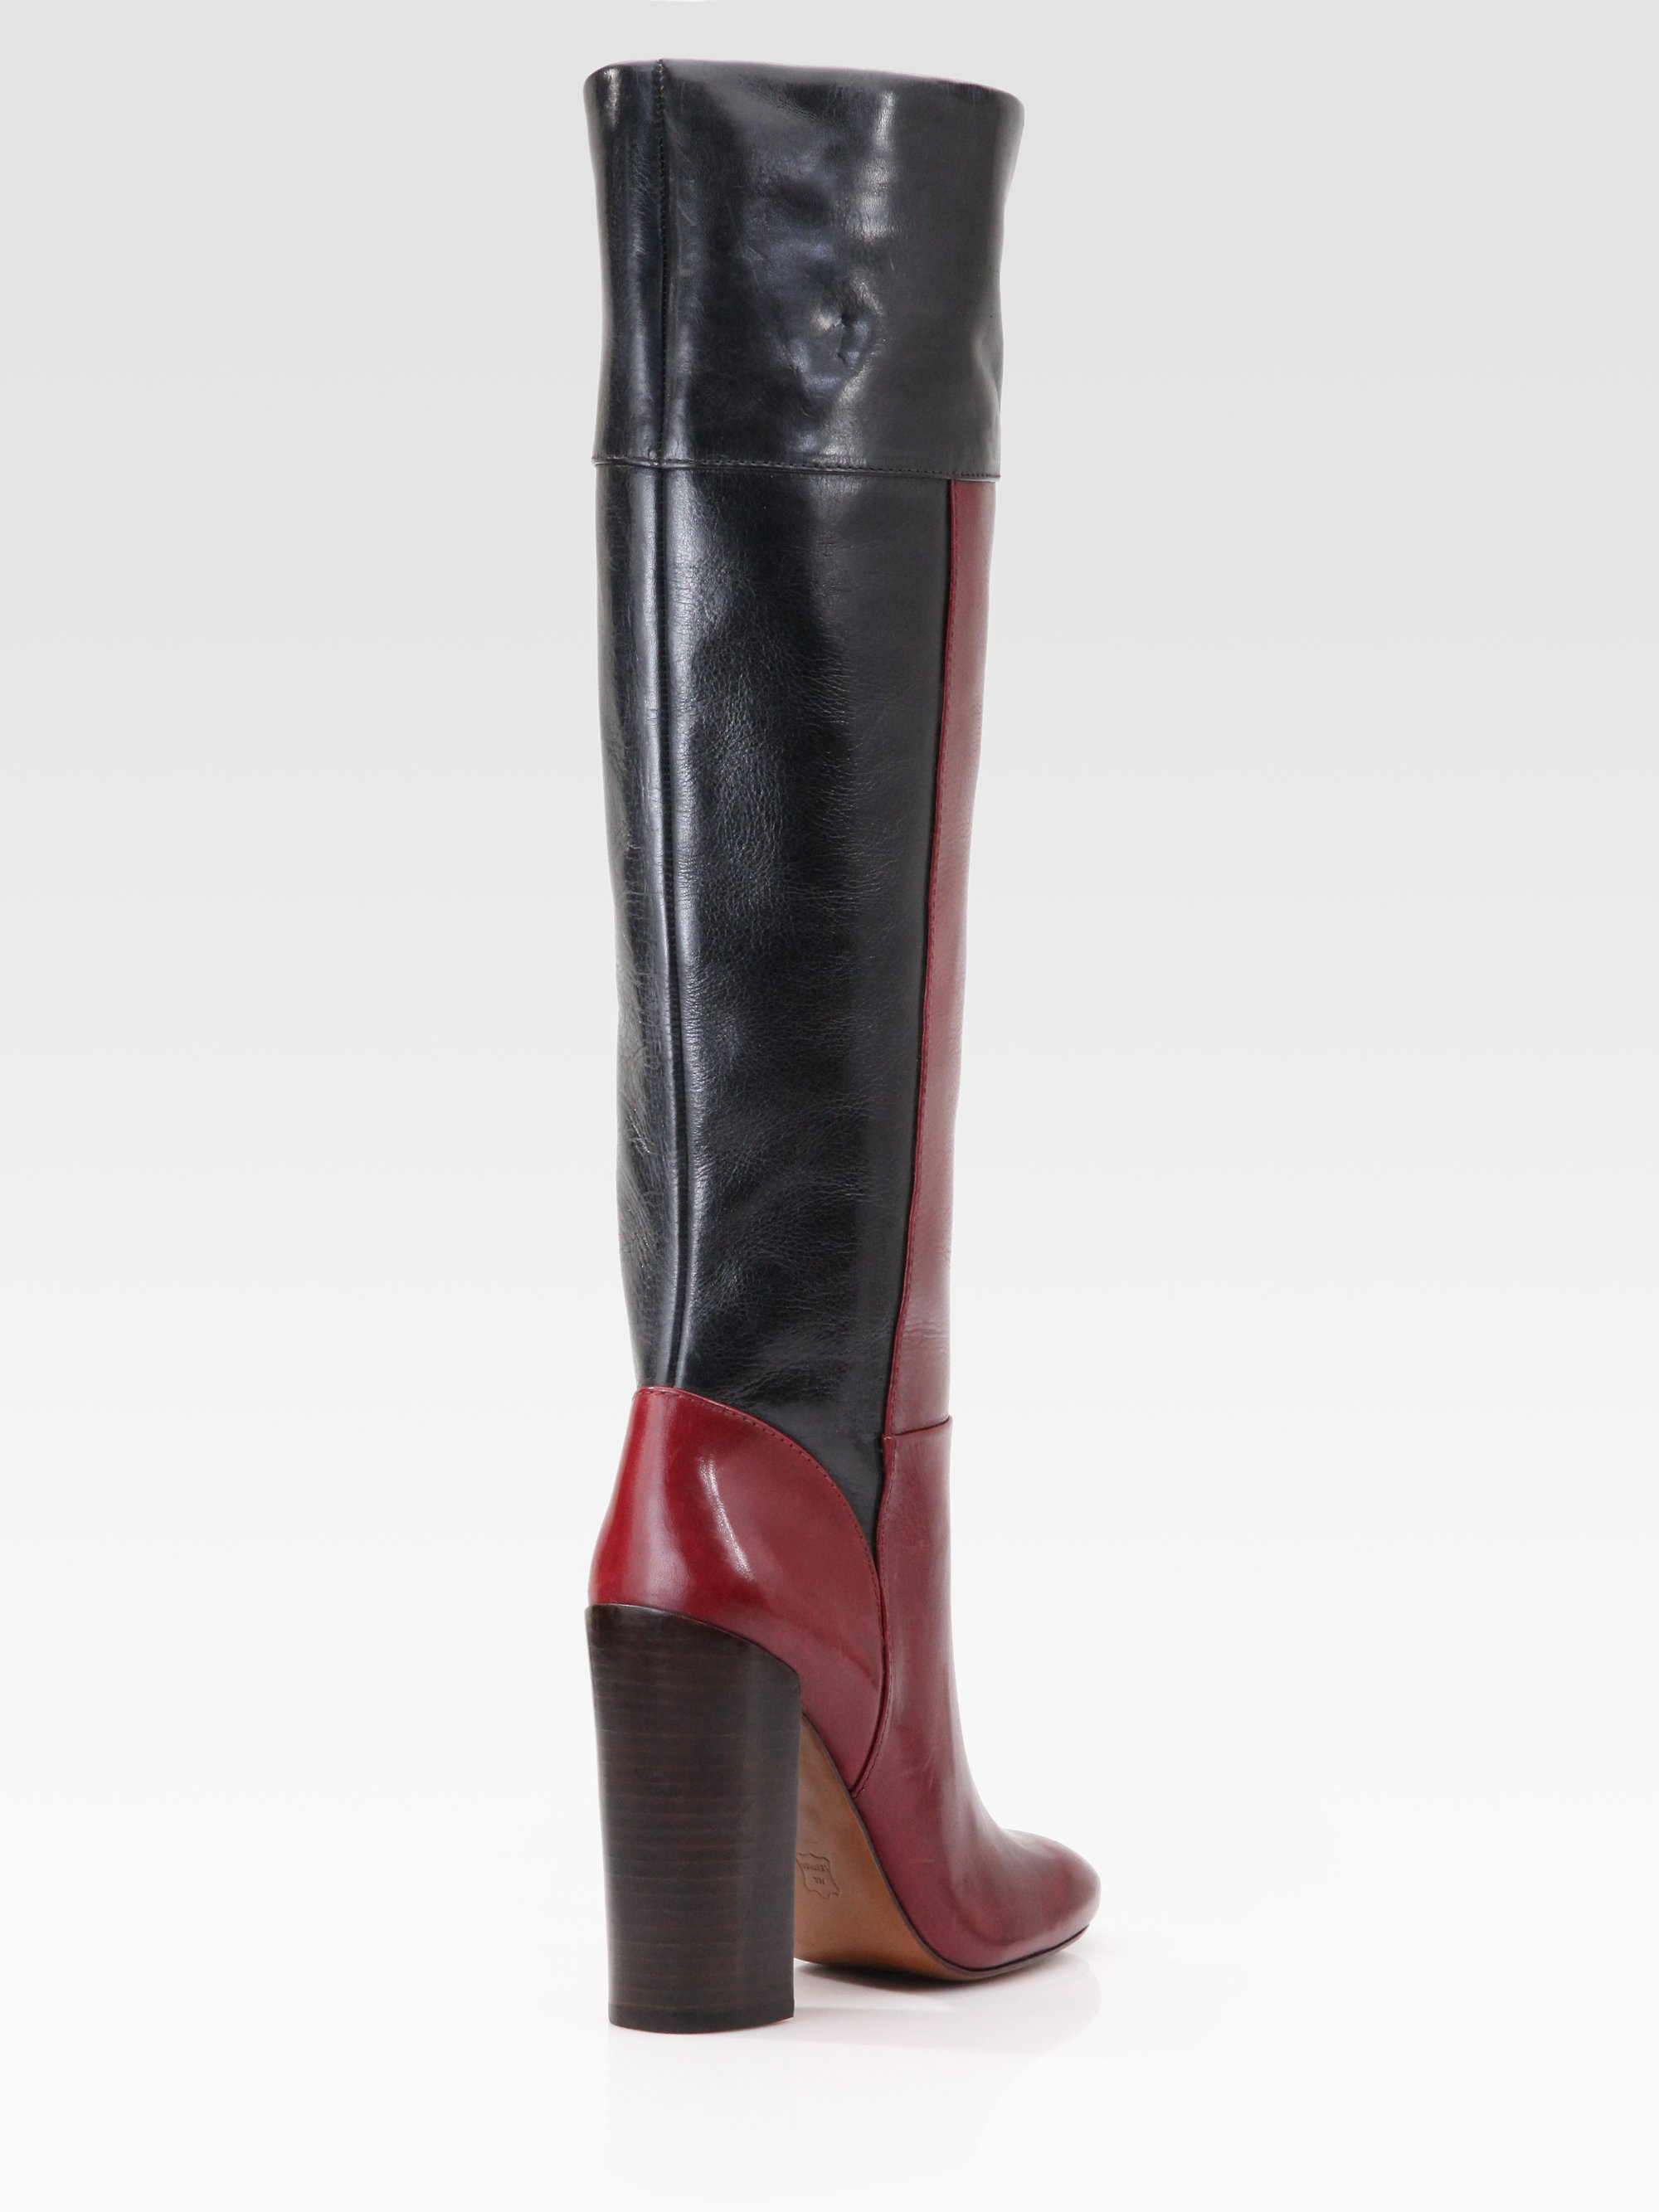 Tory burch Alicia Leather Colorblock Kneehigh Boots in Red | Lyst